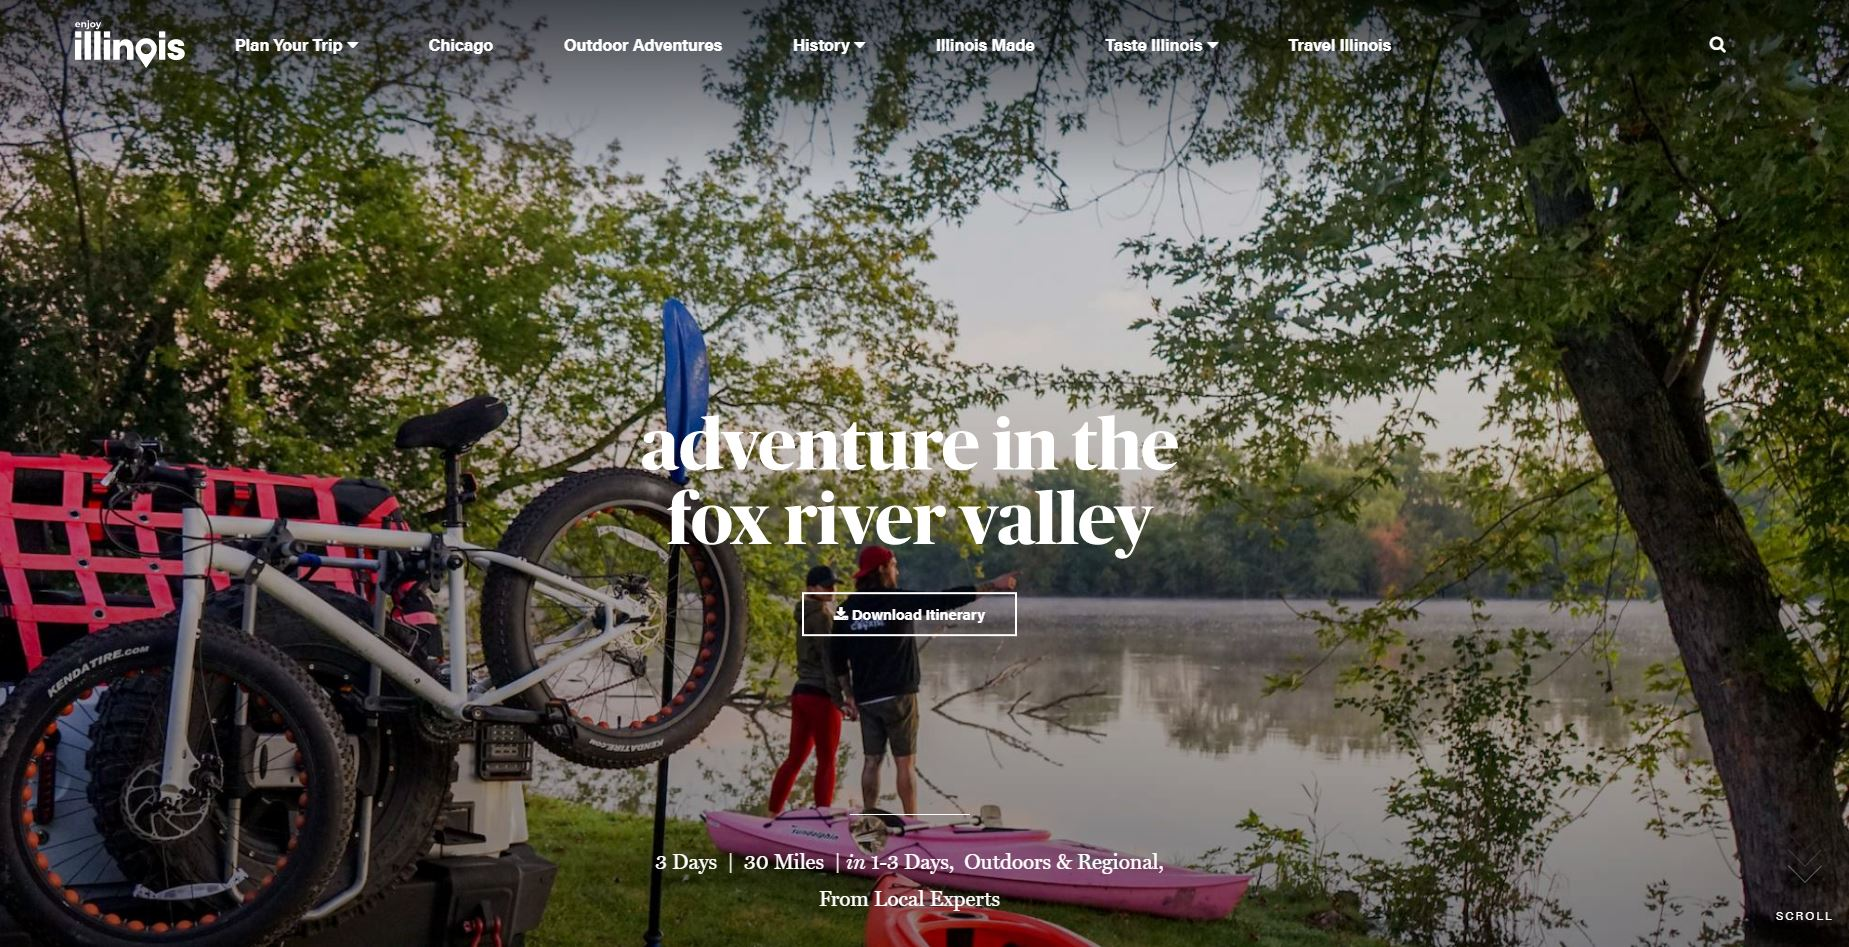 adventure-fox-river-valley-aurora-elgin-illinois